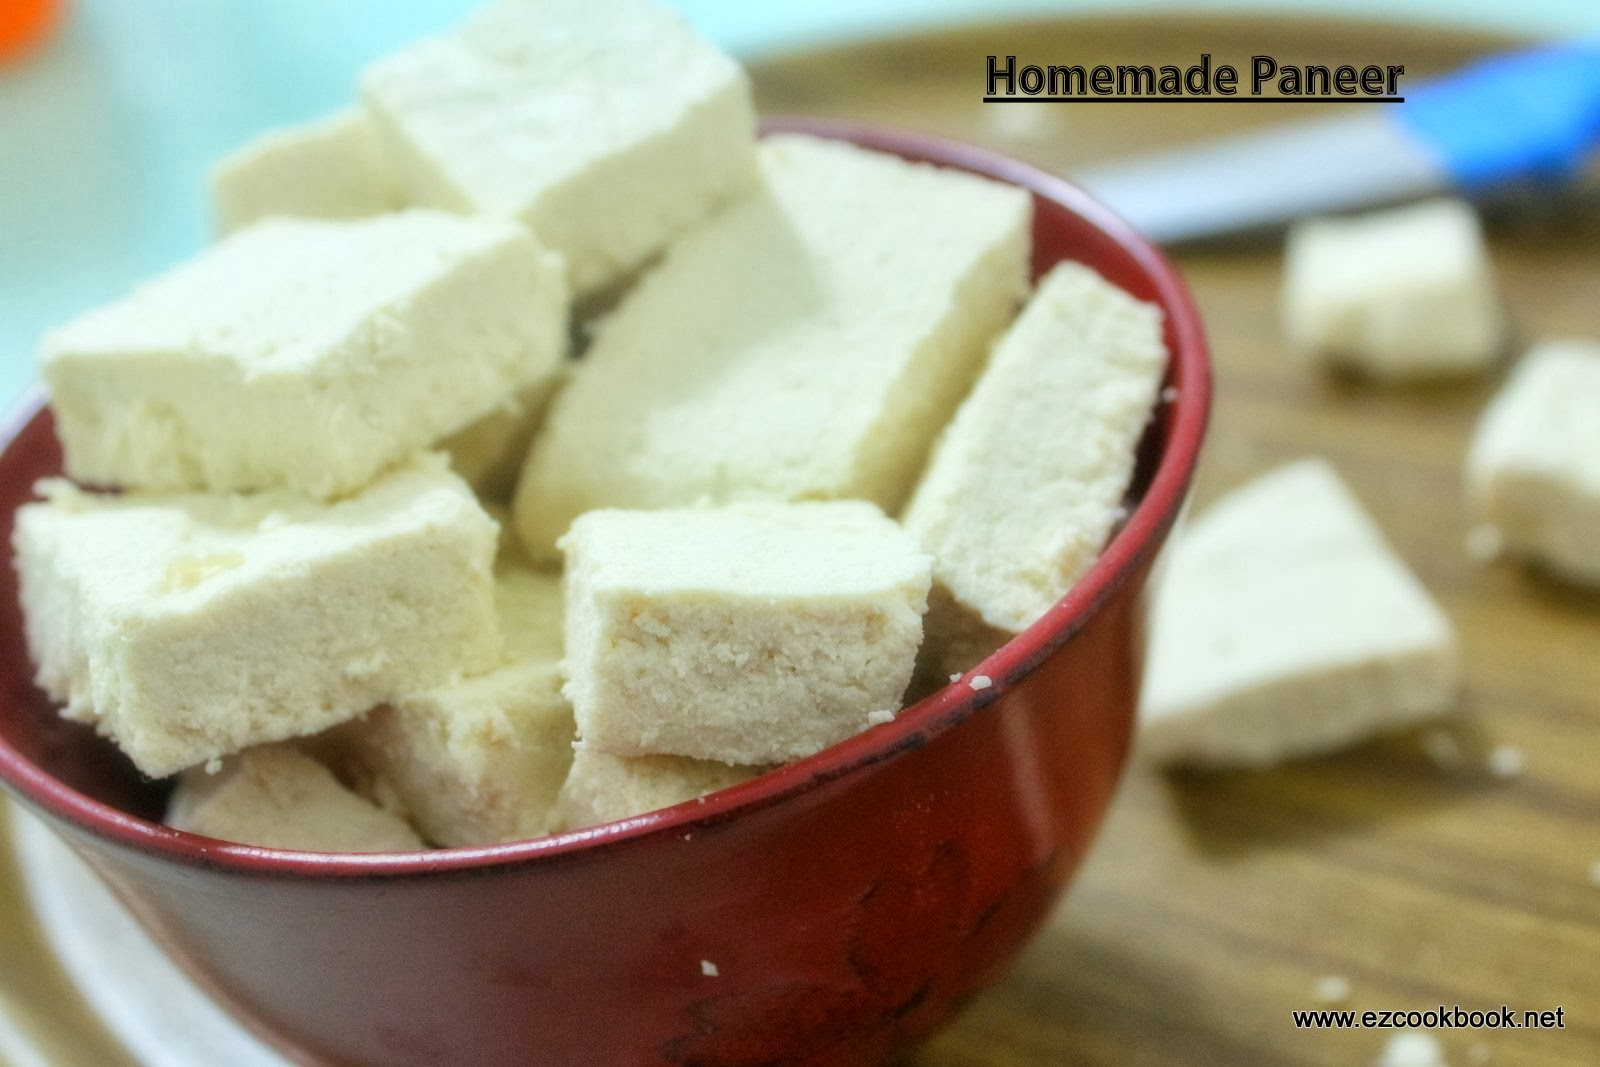 Homemade Paneer | How to make Indian Cottage Cheese | EzCookBook